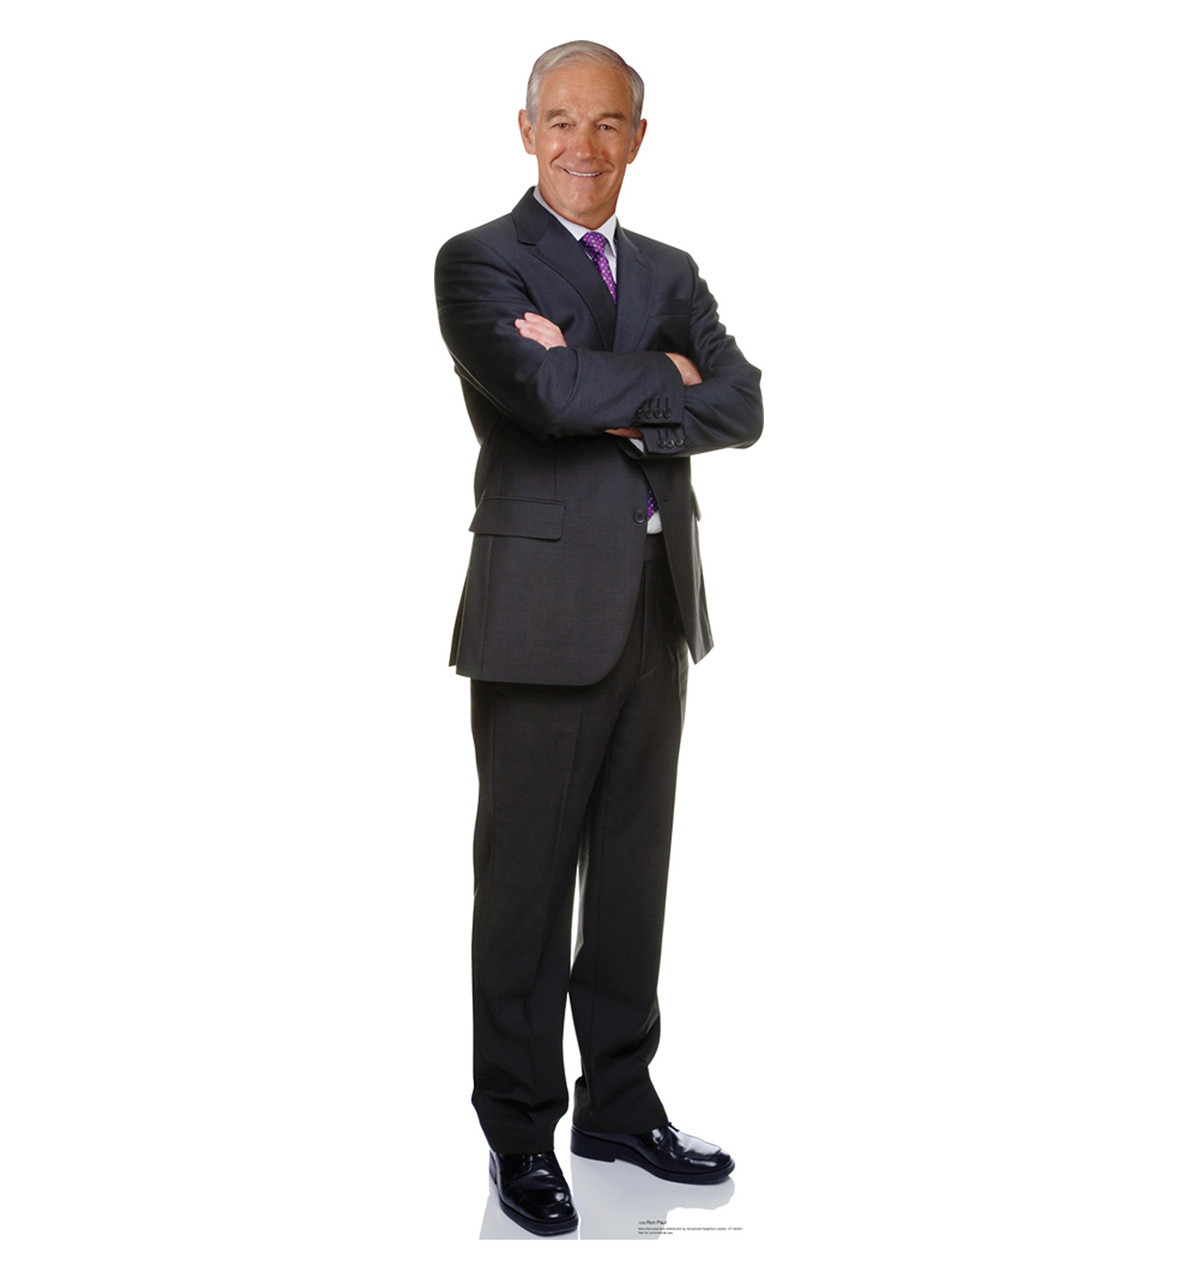 Ron Paul - Cardboard Cutout